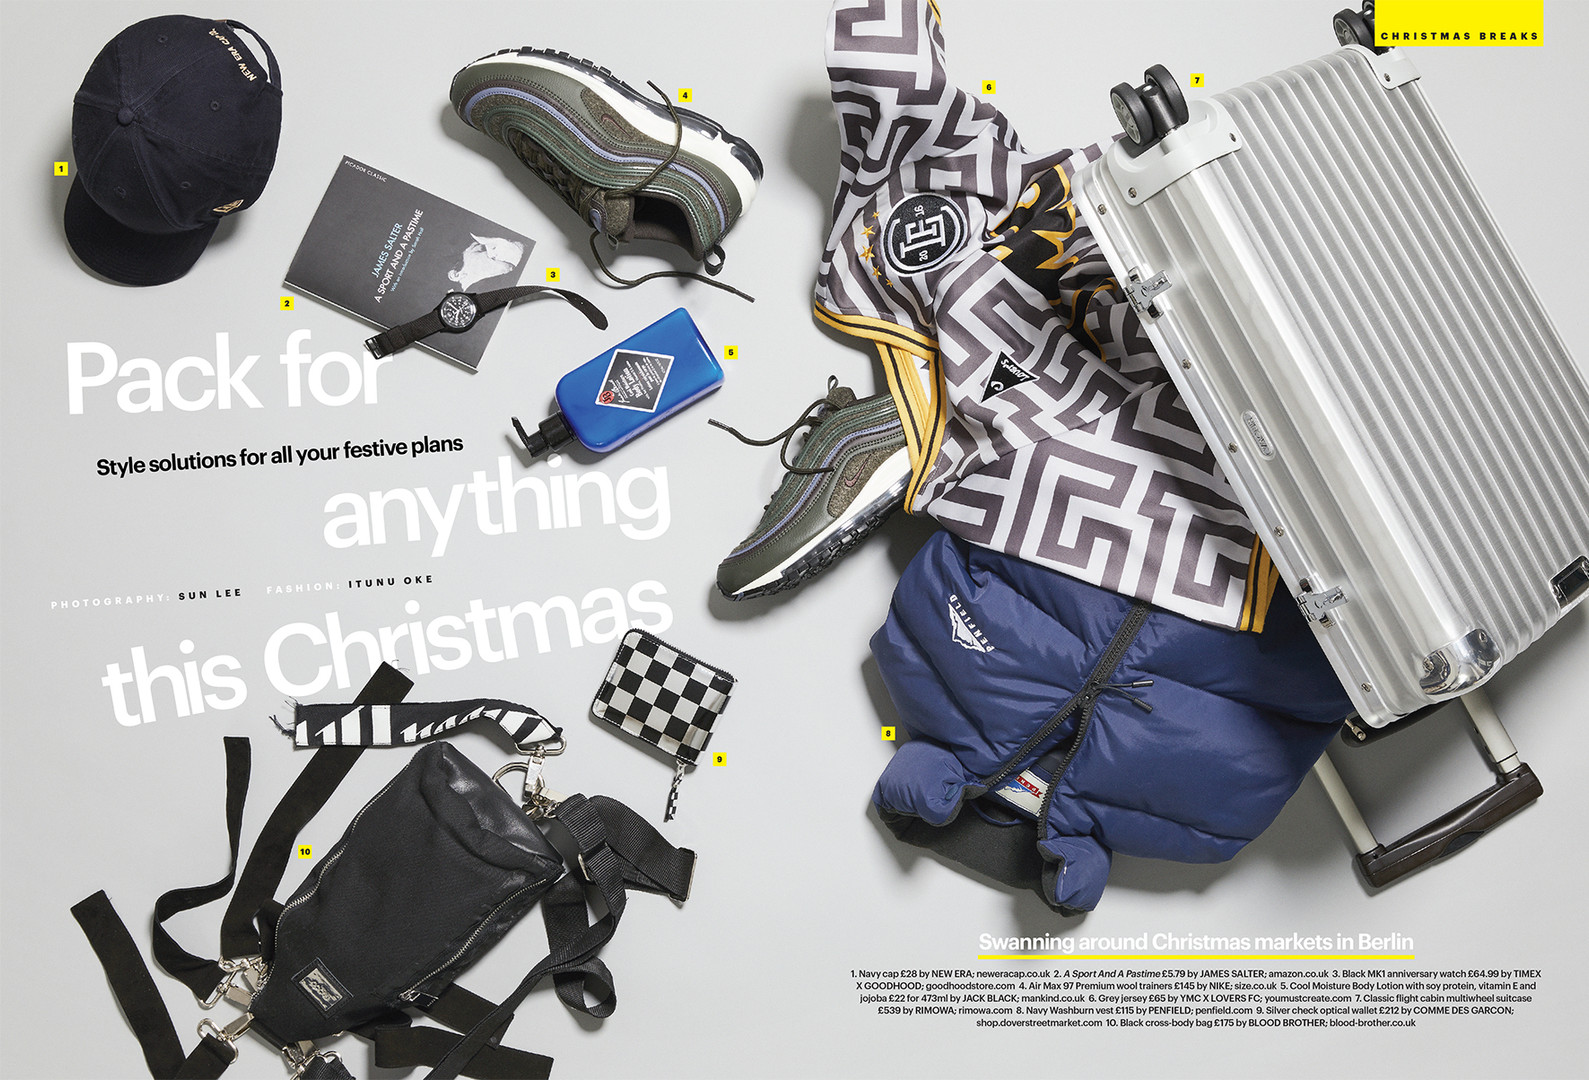 500_style_packing-1.jpg